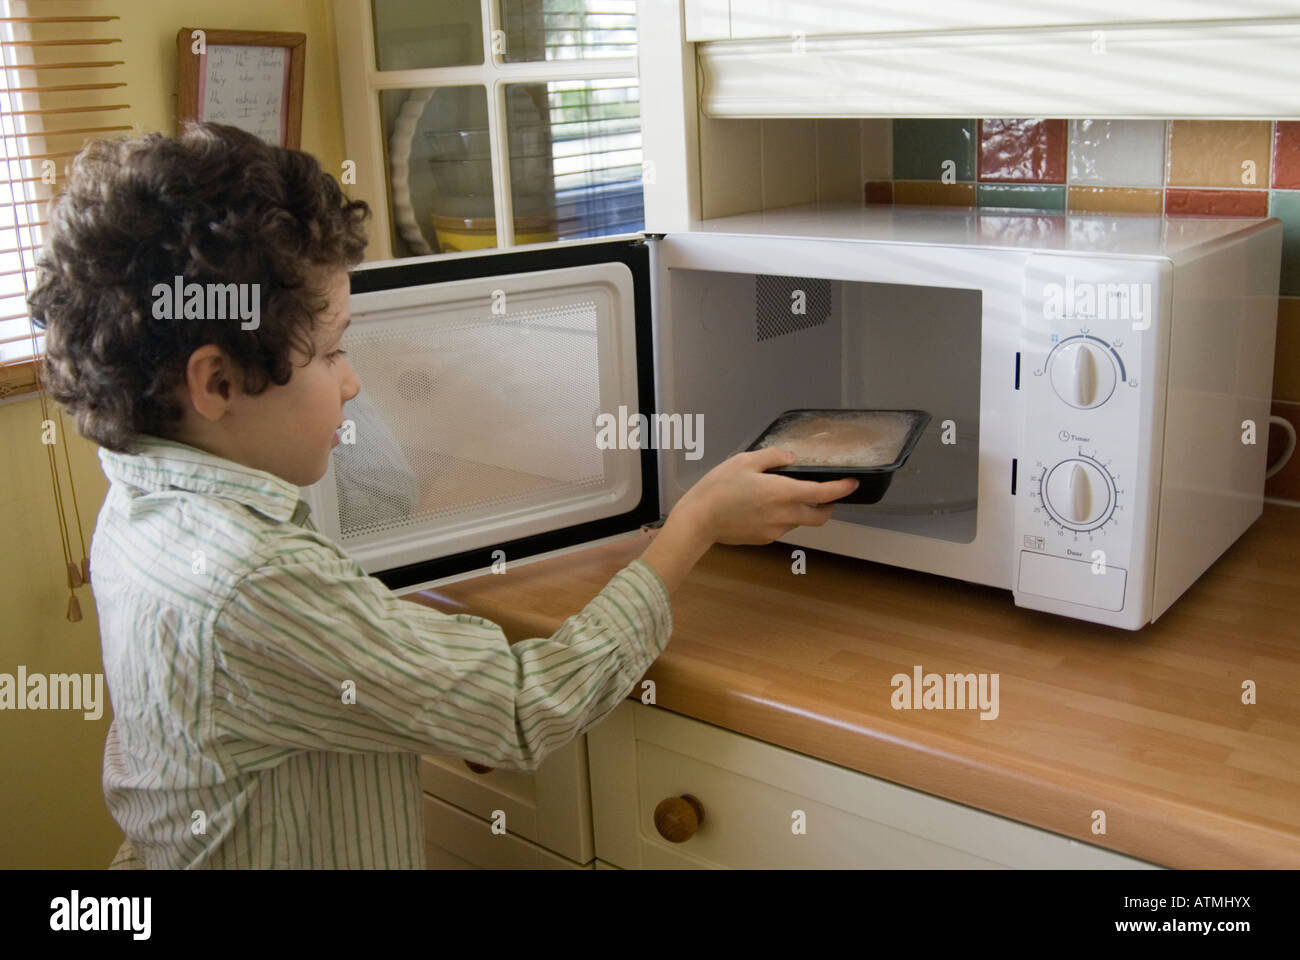 Young child putting ready meal into a microwave oven, England, UK - Stock Image